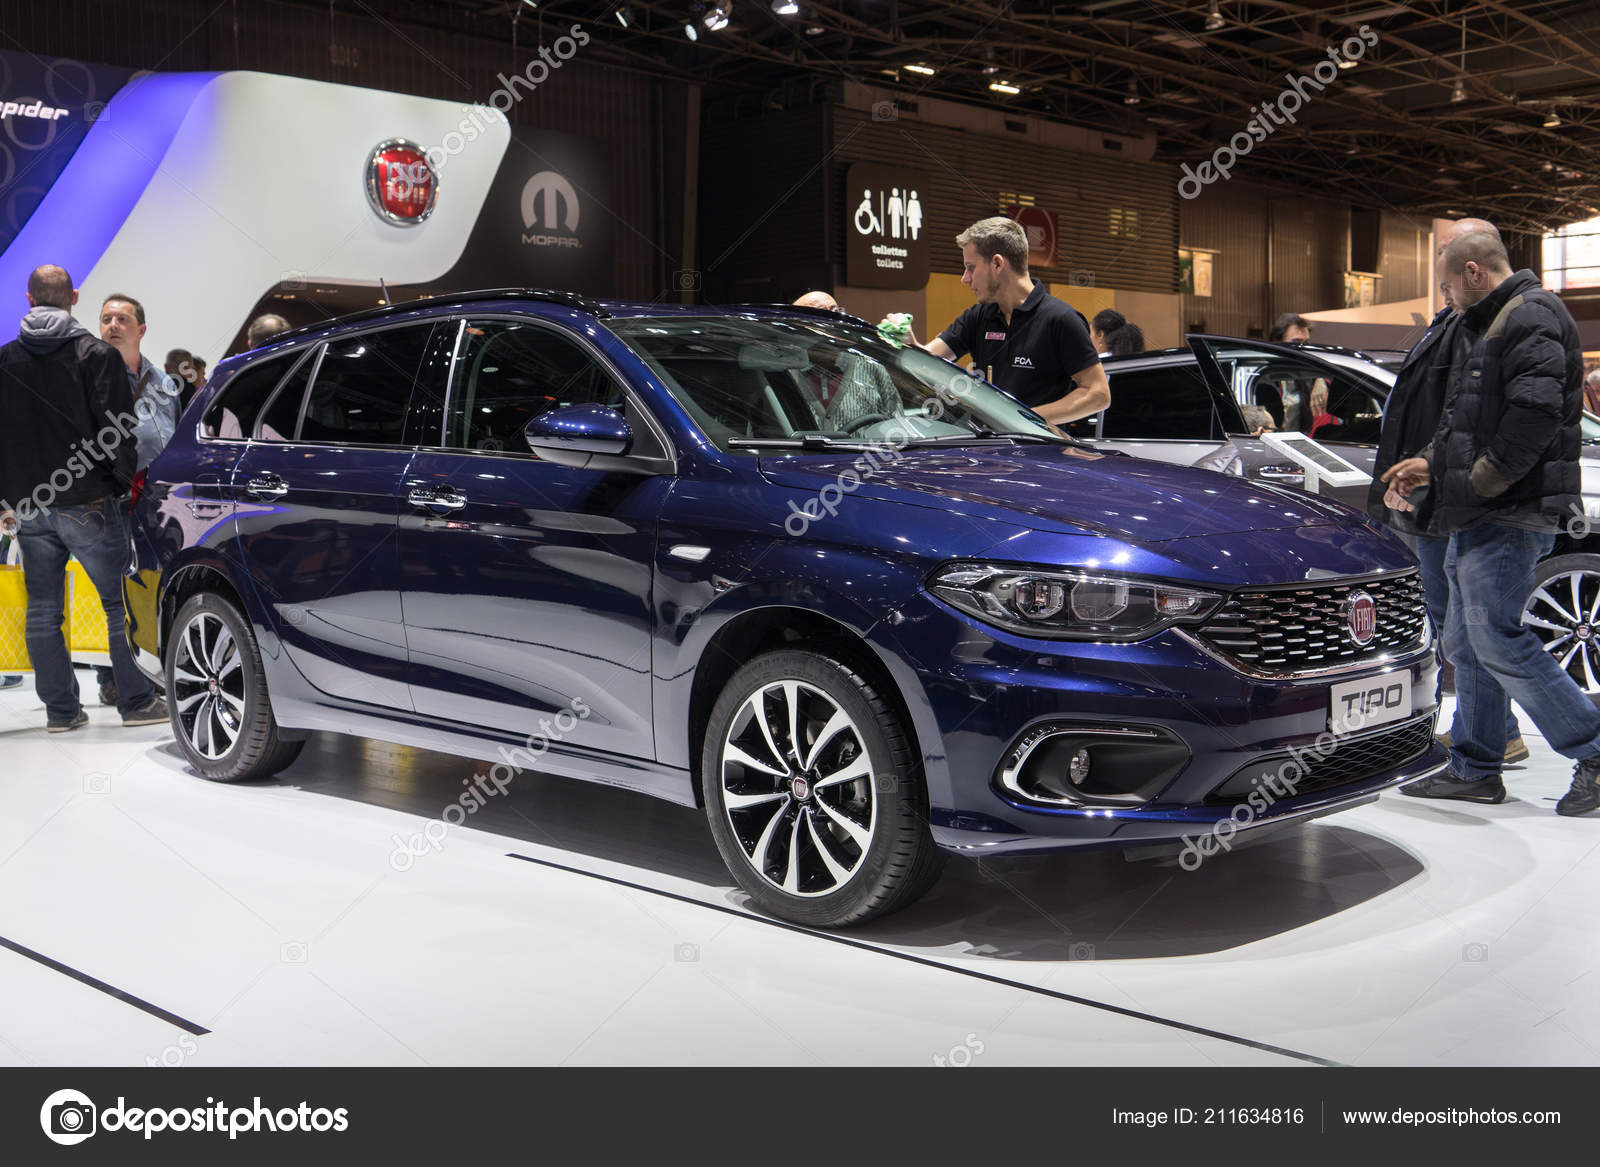 Paris France Octobre 2016 Fiat Tipo Affiche Salon Automobile ...